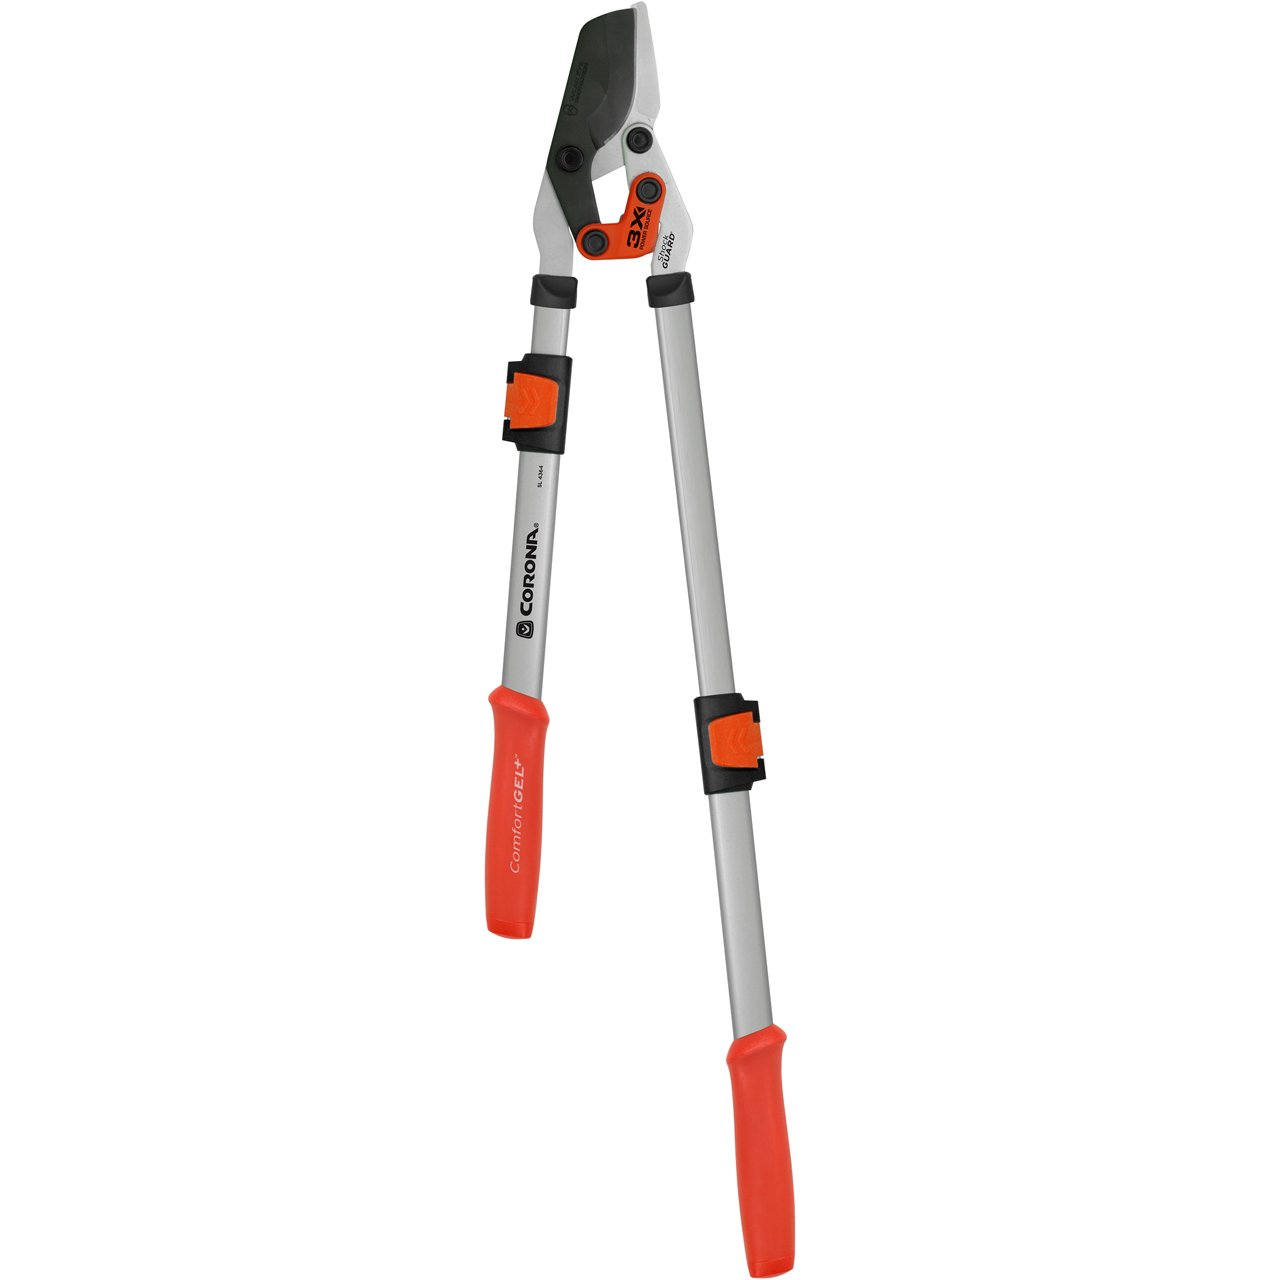 Corona SL 4364 DualLINK with ComfortGEL Grip Extendable Heavy Duty Bypass Limb and Branch Lopper Cuts Up to 1-3/4'' by Corona